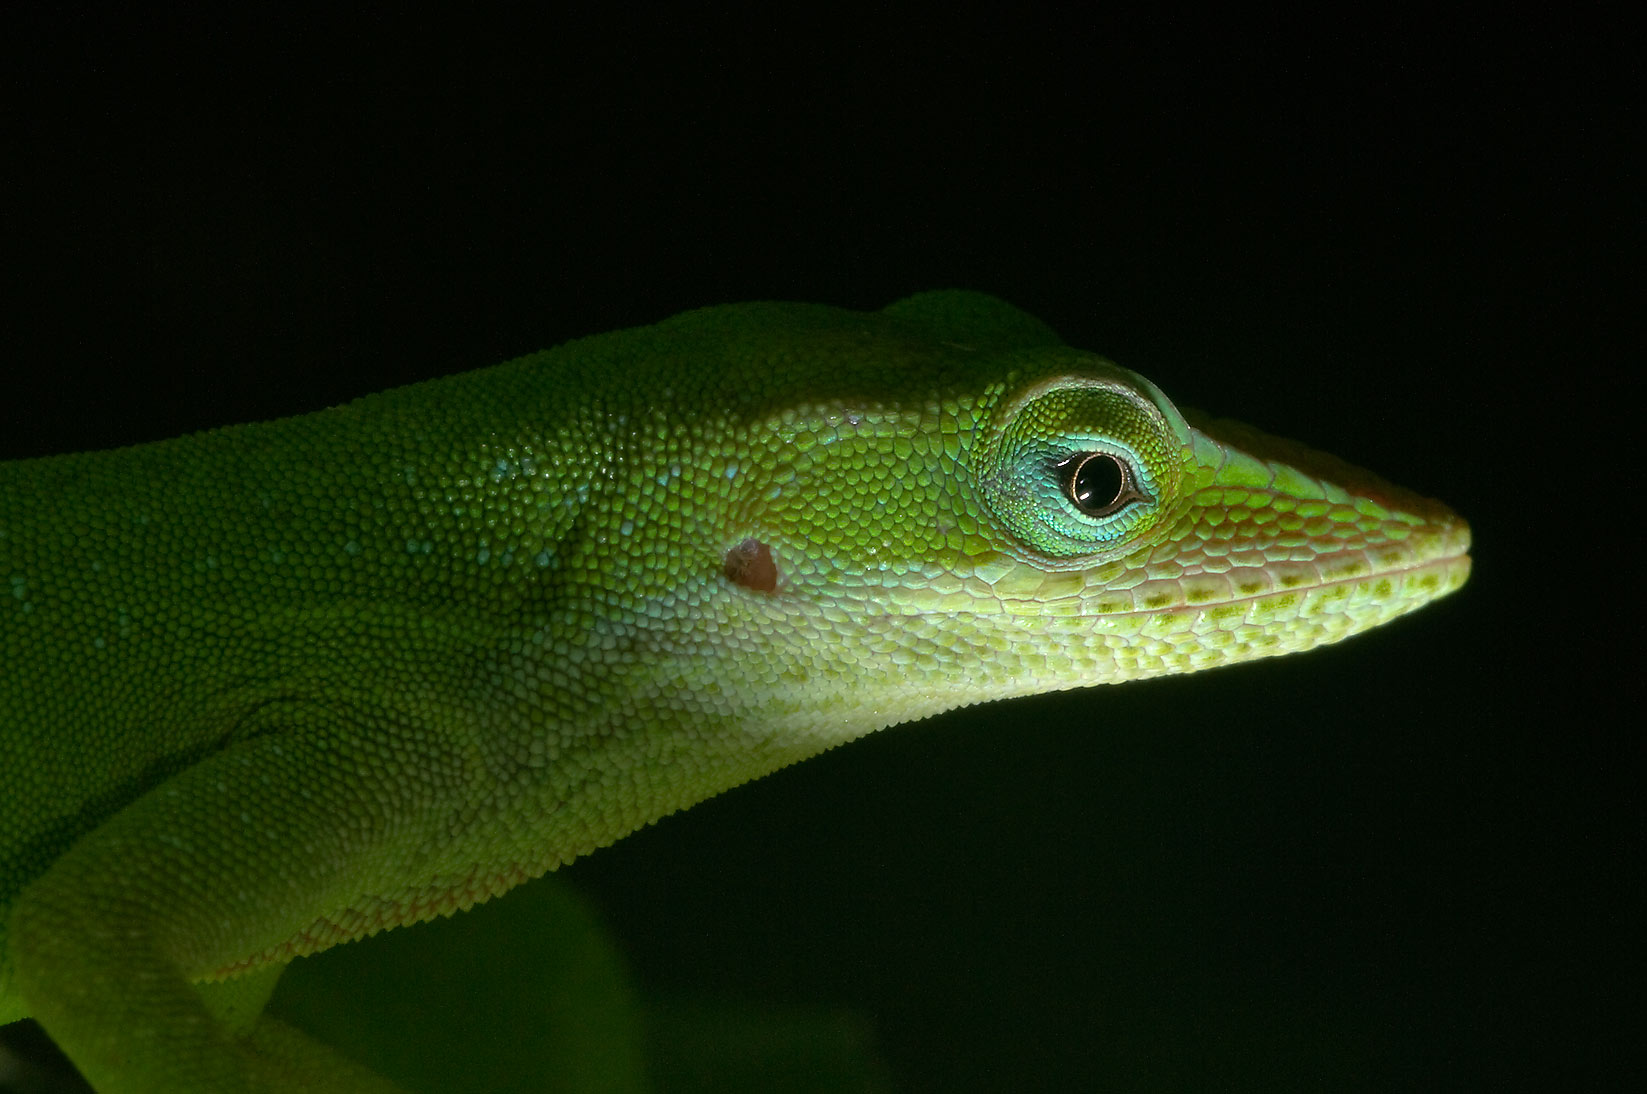 Peeking green anole (Anolis carolinensis) from...M University. College Station, Texas